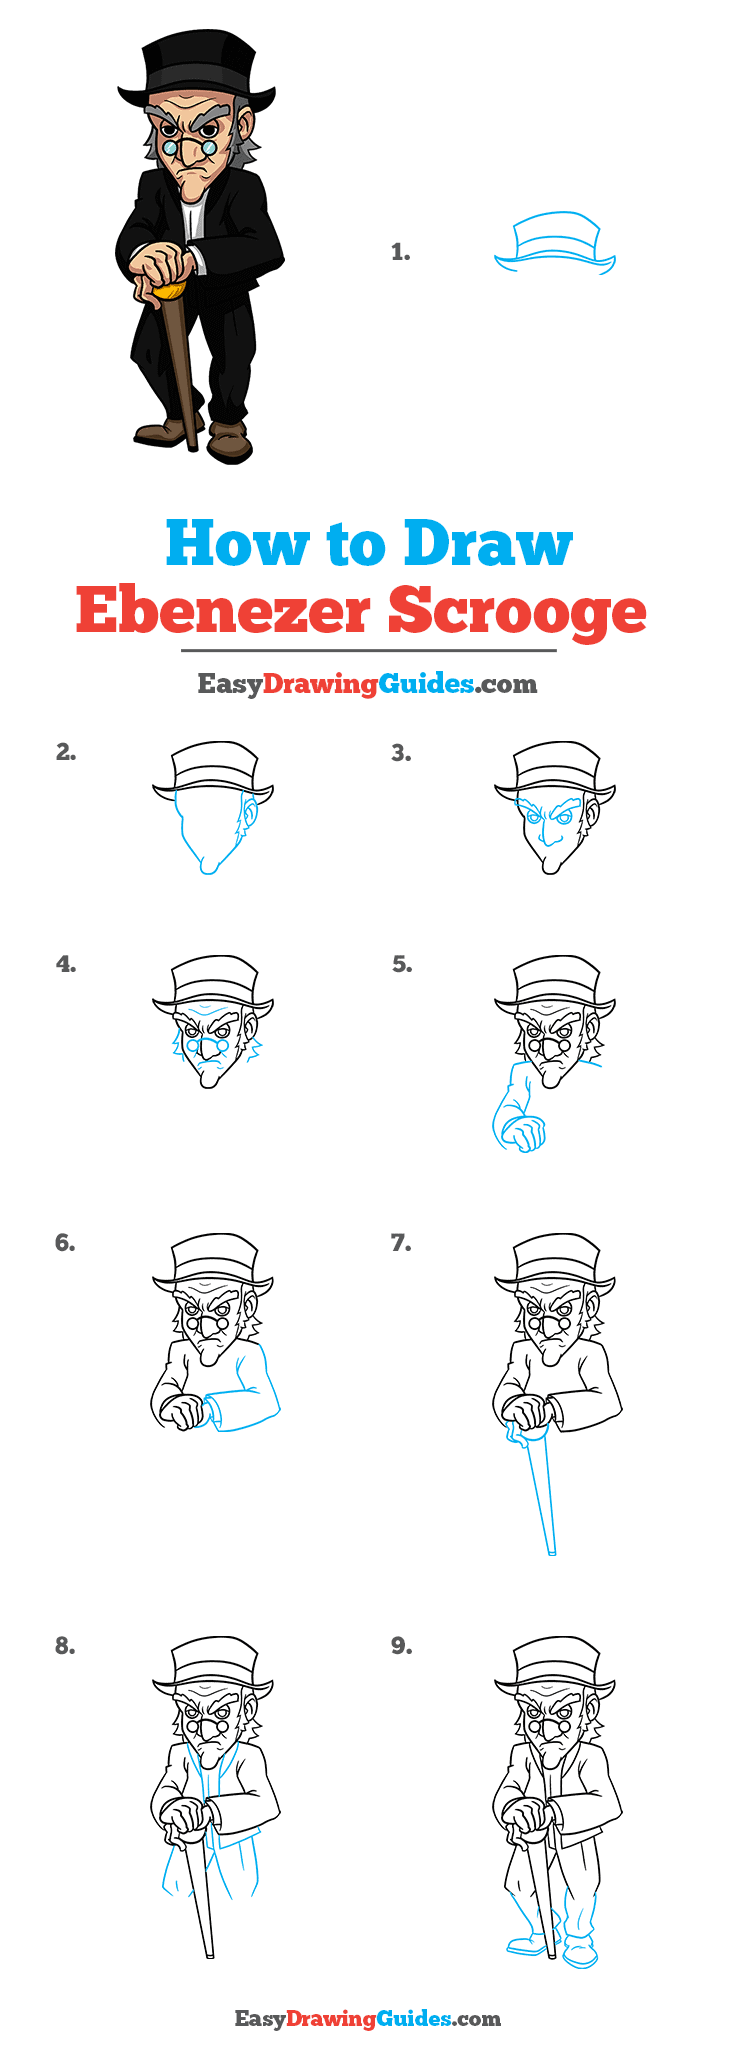 How to Draw Ebenezer Scrooge from A Christmas Carol Step by Step Tutorial Image